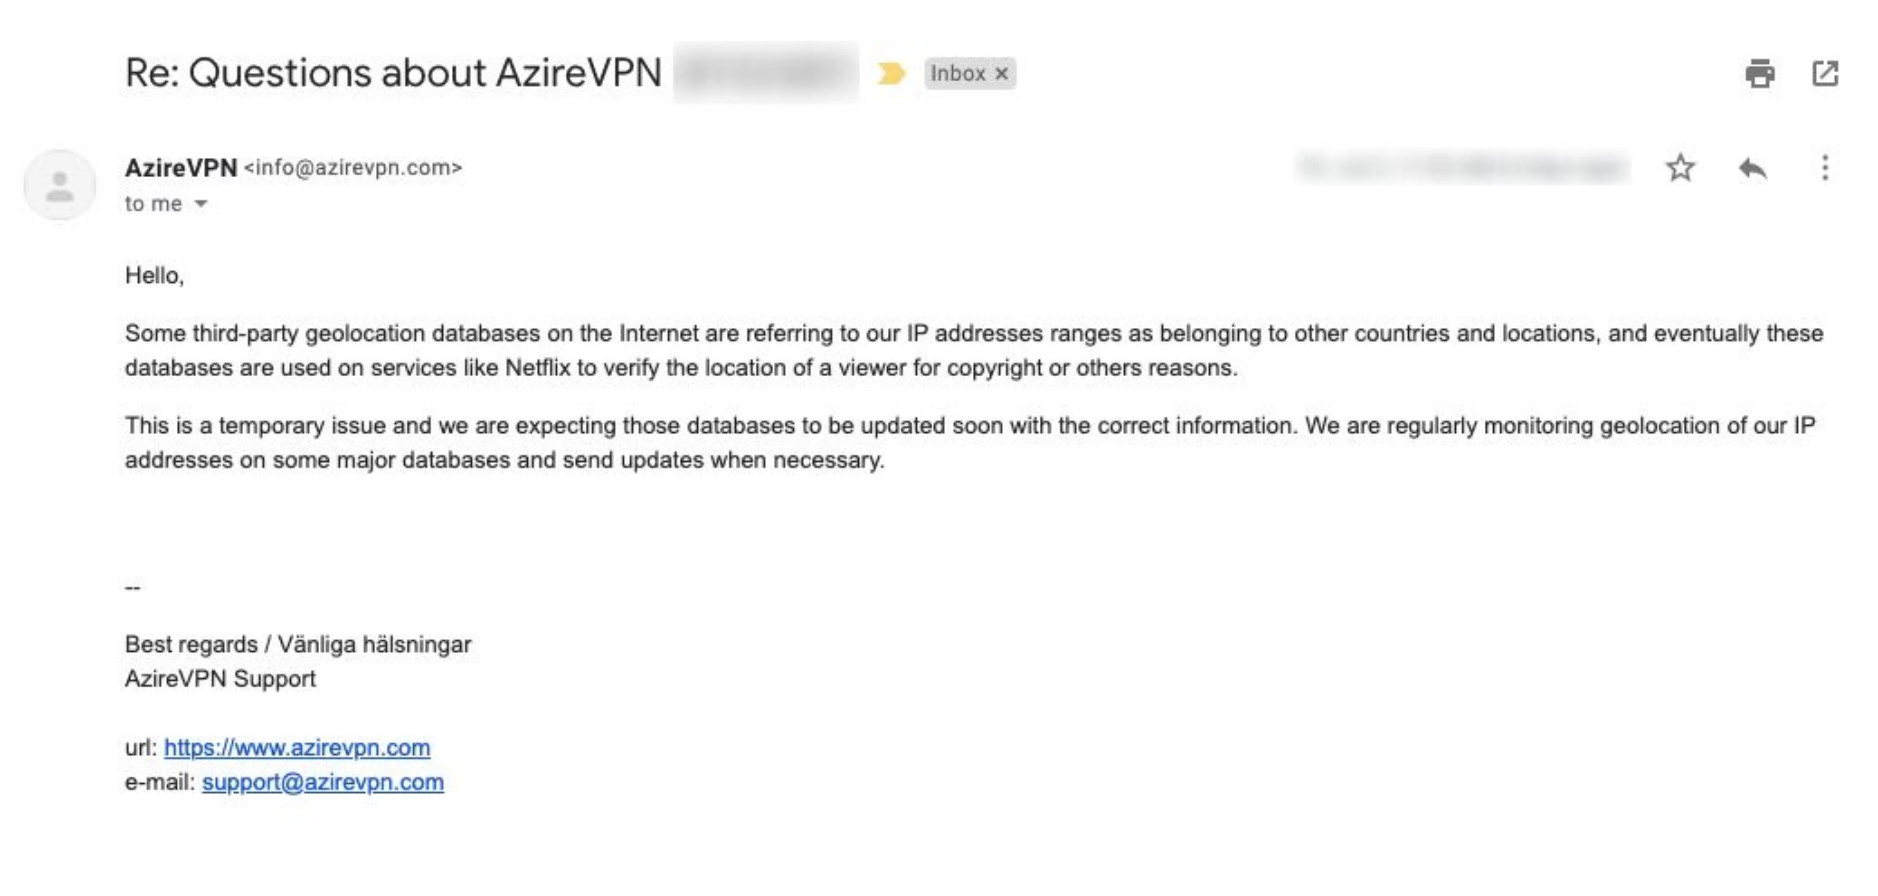 A screenshot of my conversation with AzireVPN support